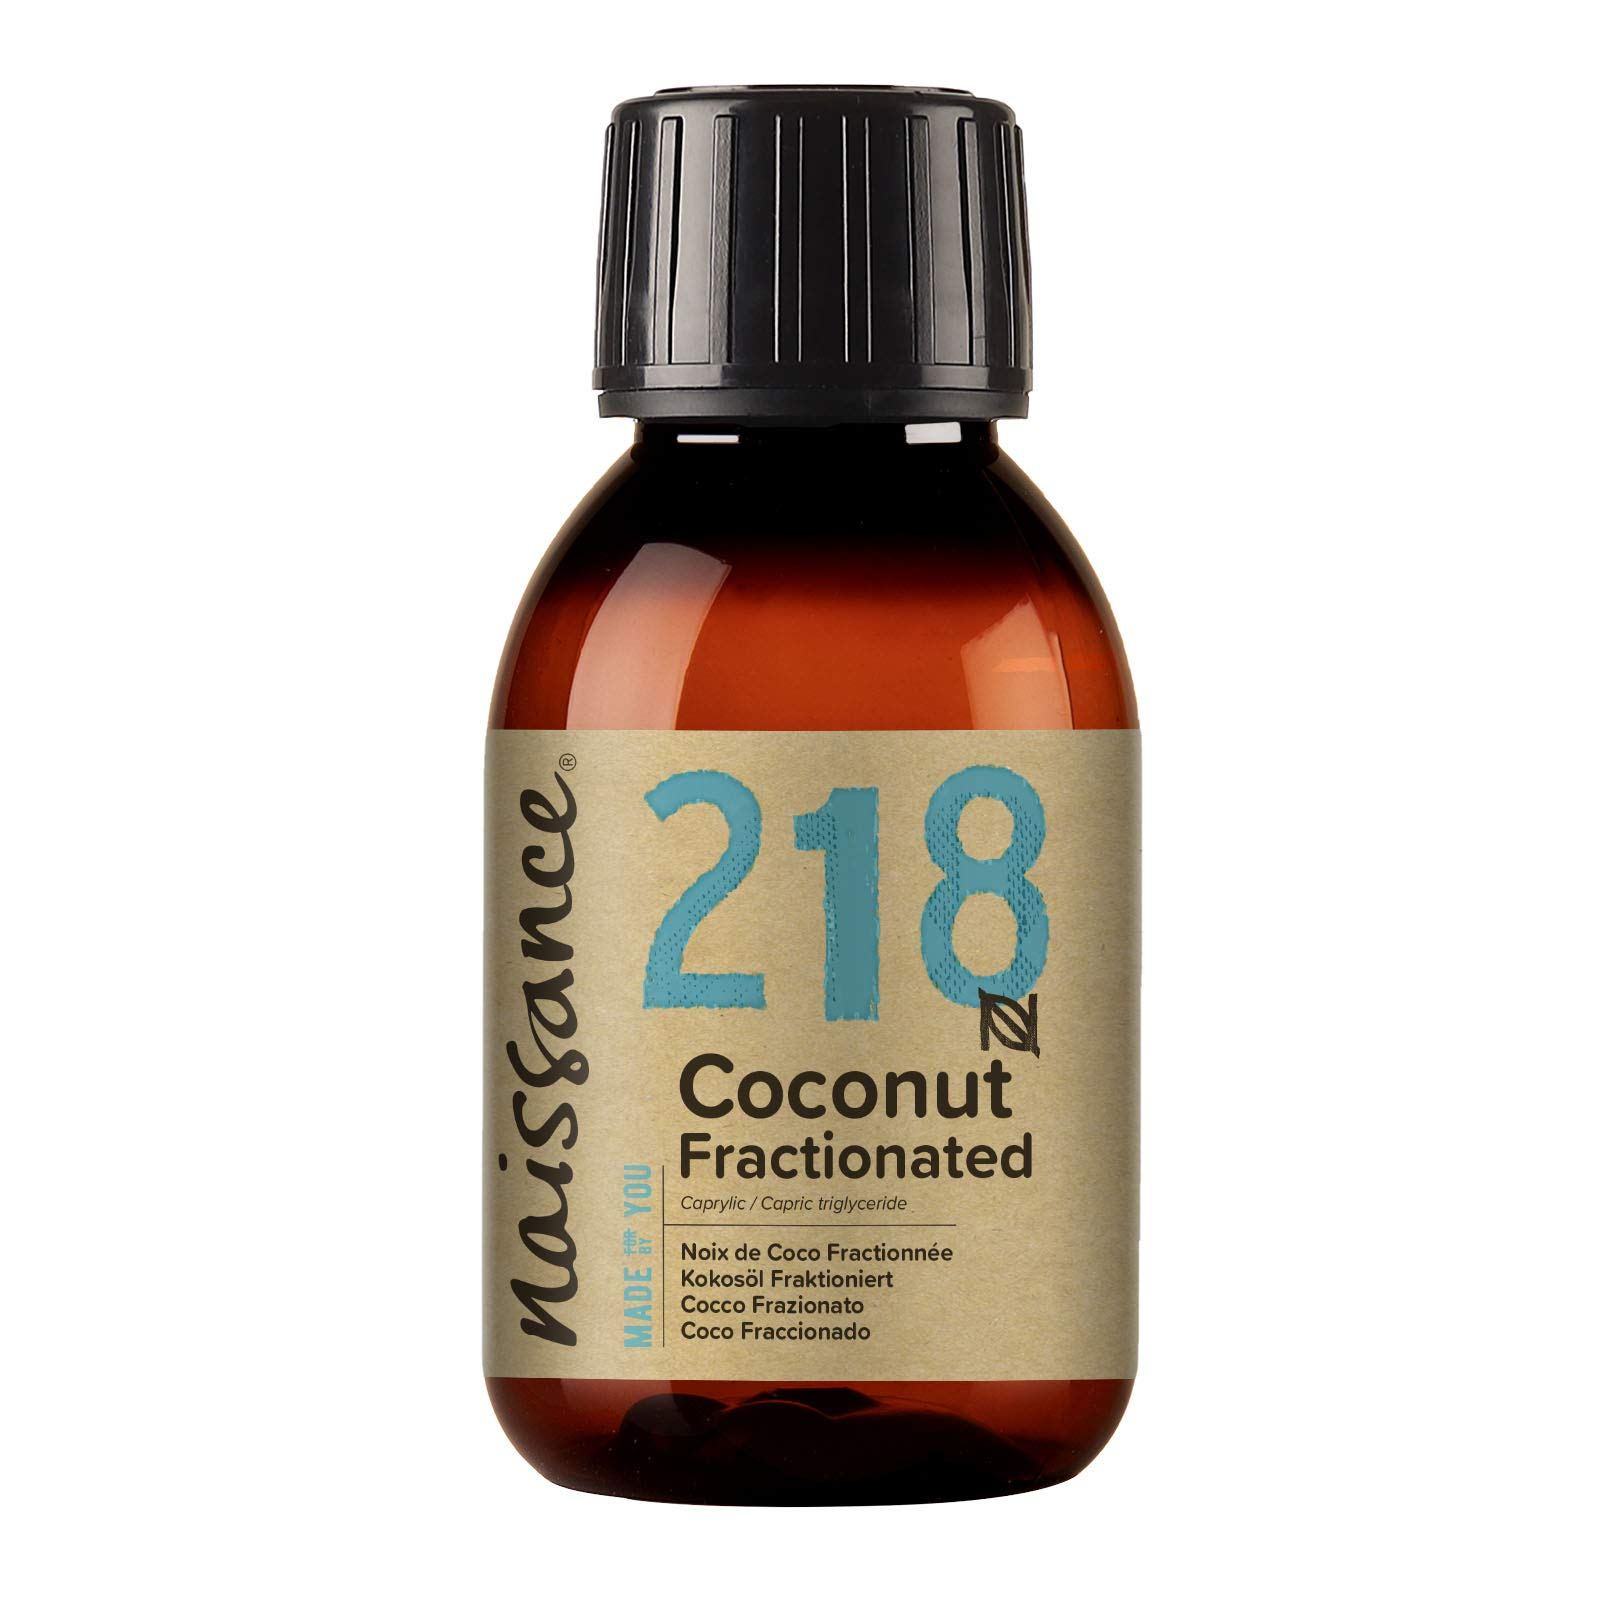 Naissance Fractionated Coconut Oil 4 fl oz - Pure Natural, Vegan, Non GMO, Hexane Free, Cruelty Free - Moisturizing & Hydrating - Ideal for Aromatherapy, Massage and DIY Beauty Recipes